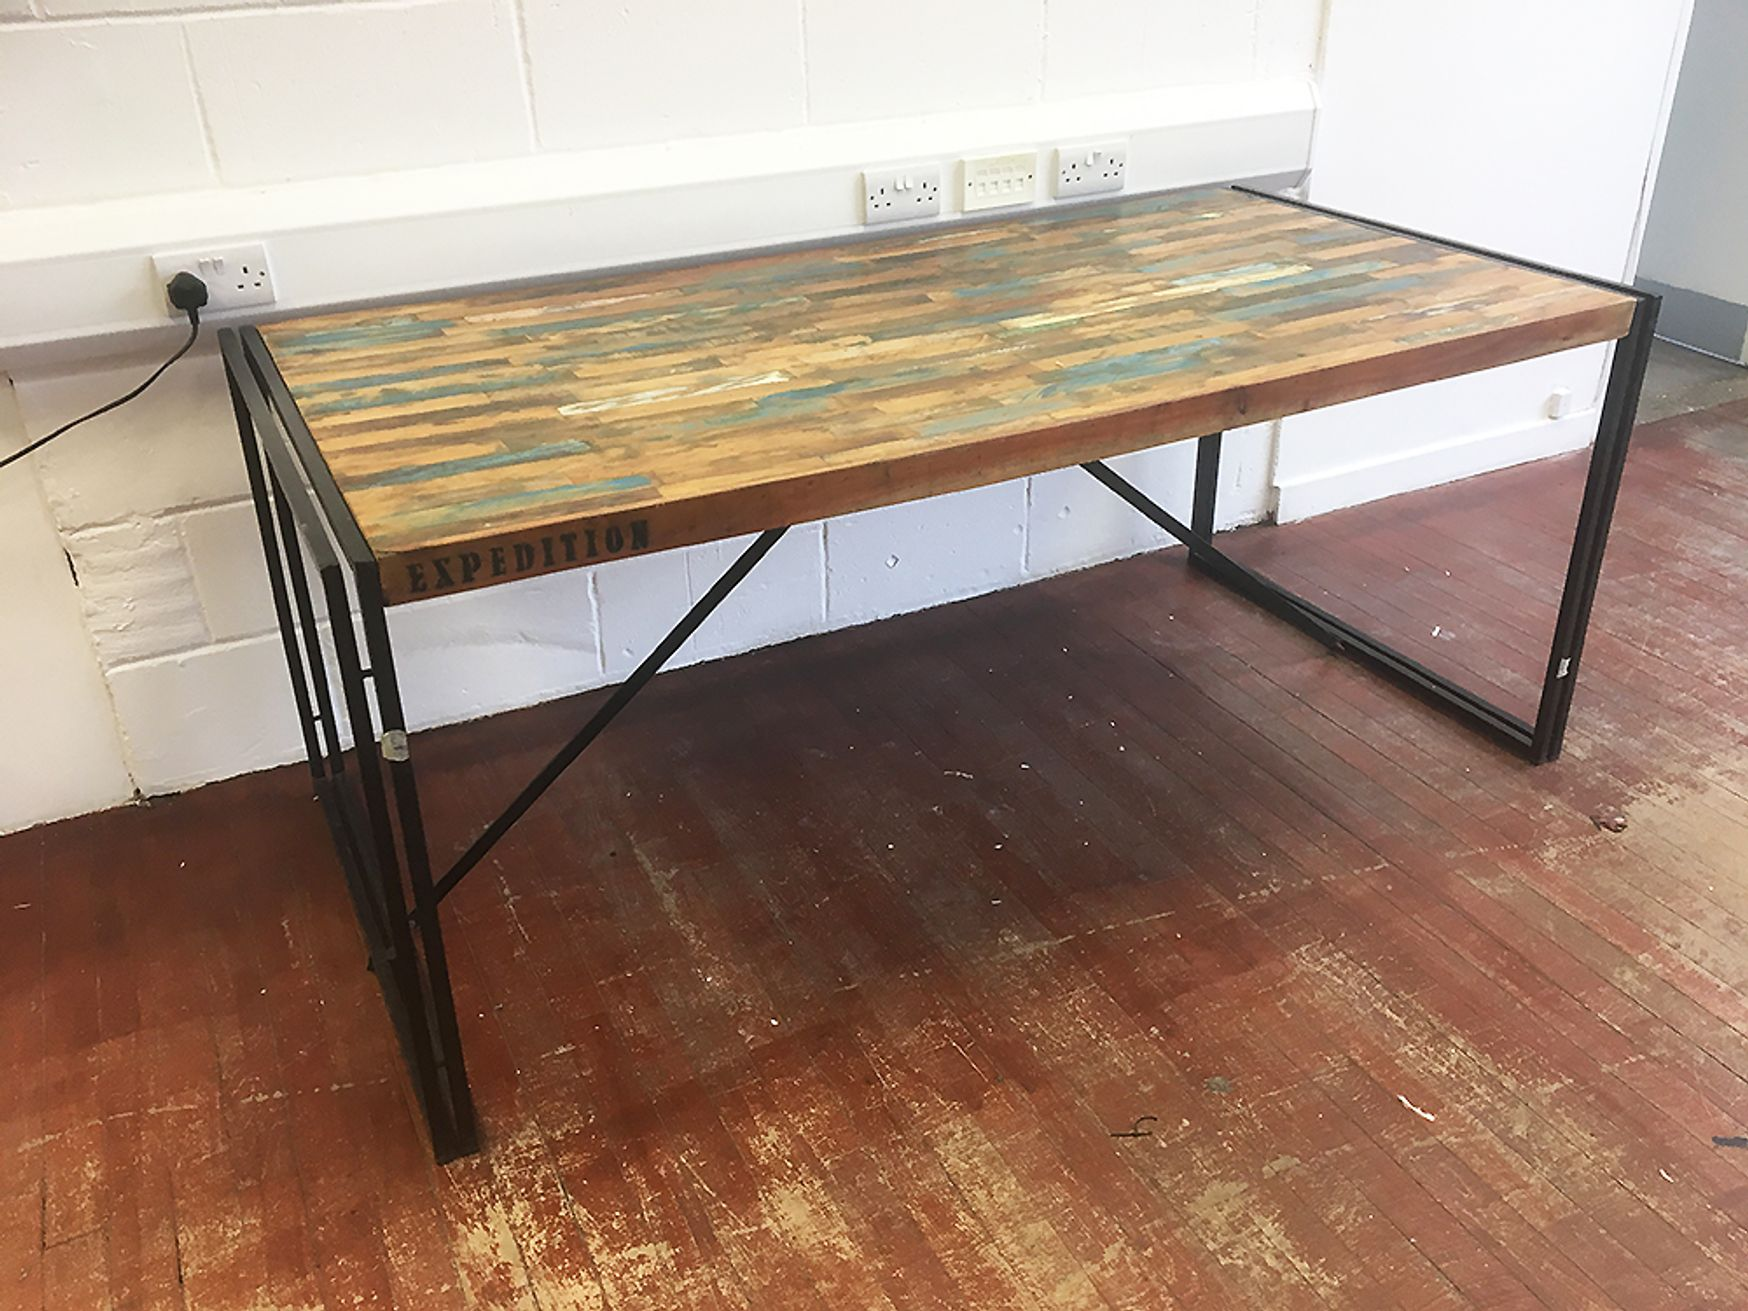 Used 1800mm Rustic Style Urban Desks/Breakout Tables